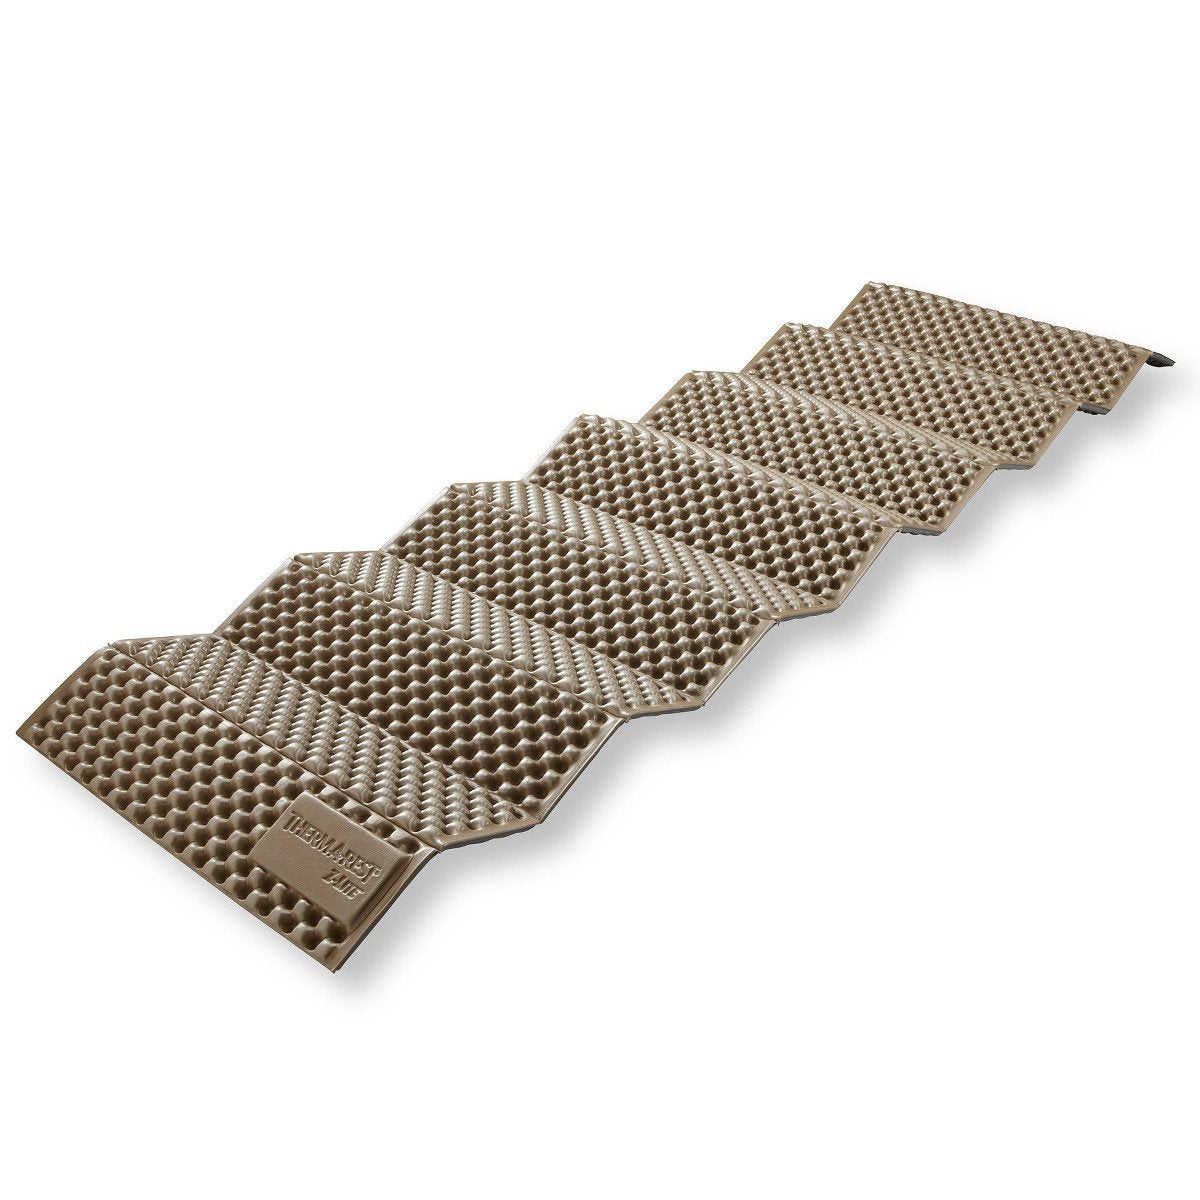 Thermarest Z Lite Regular camping mat, shown partially extended in brown colour